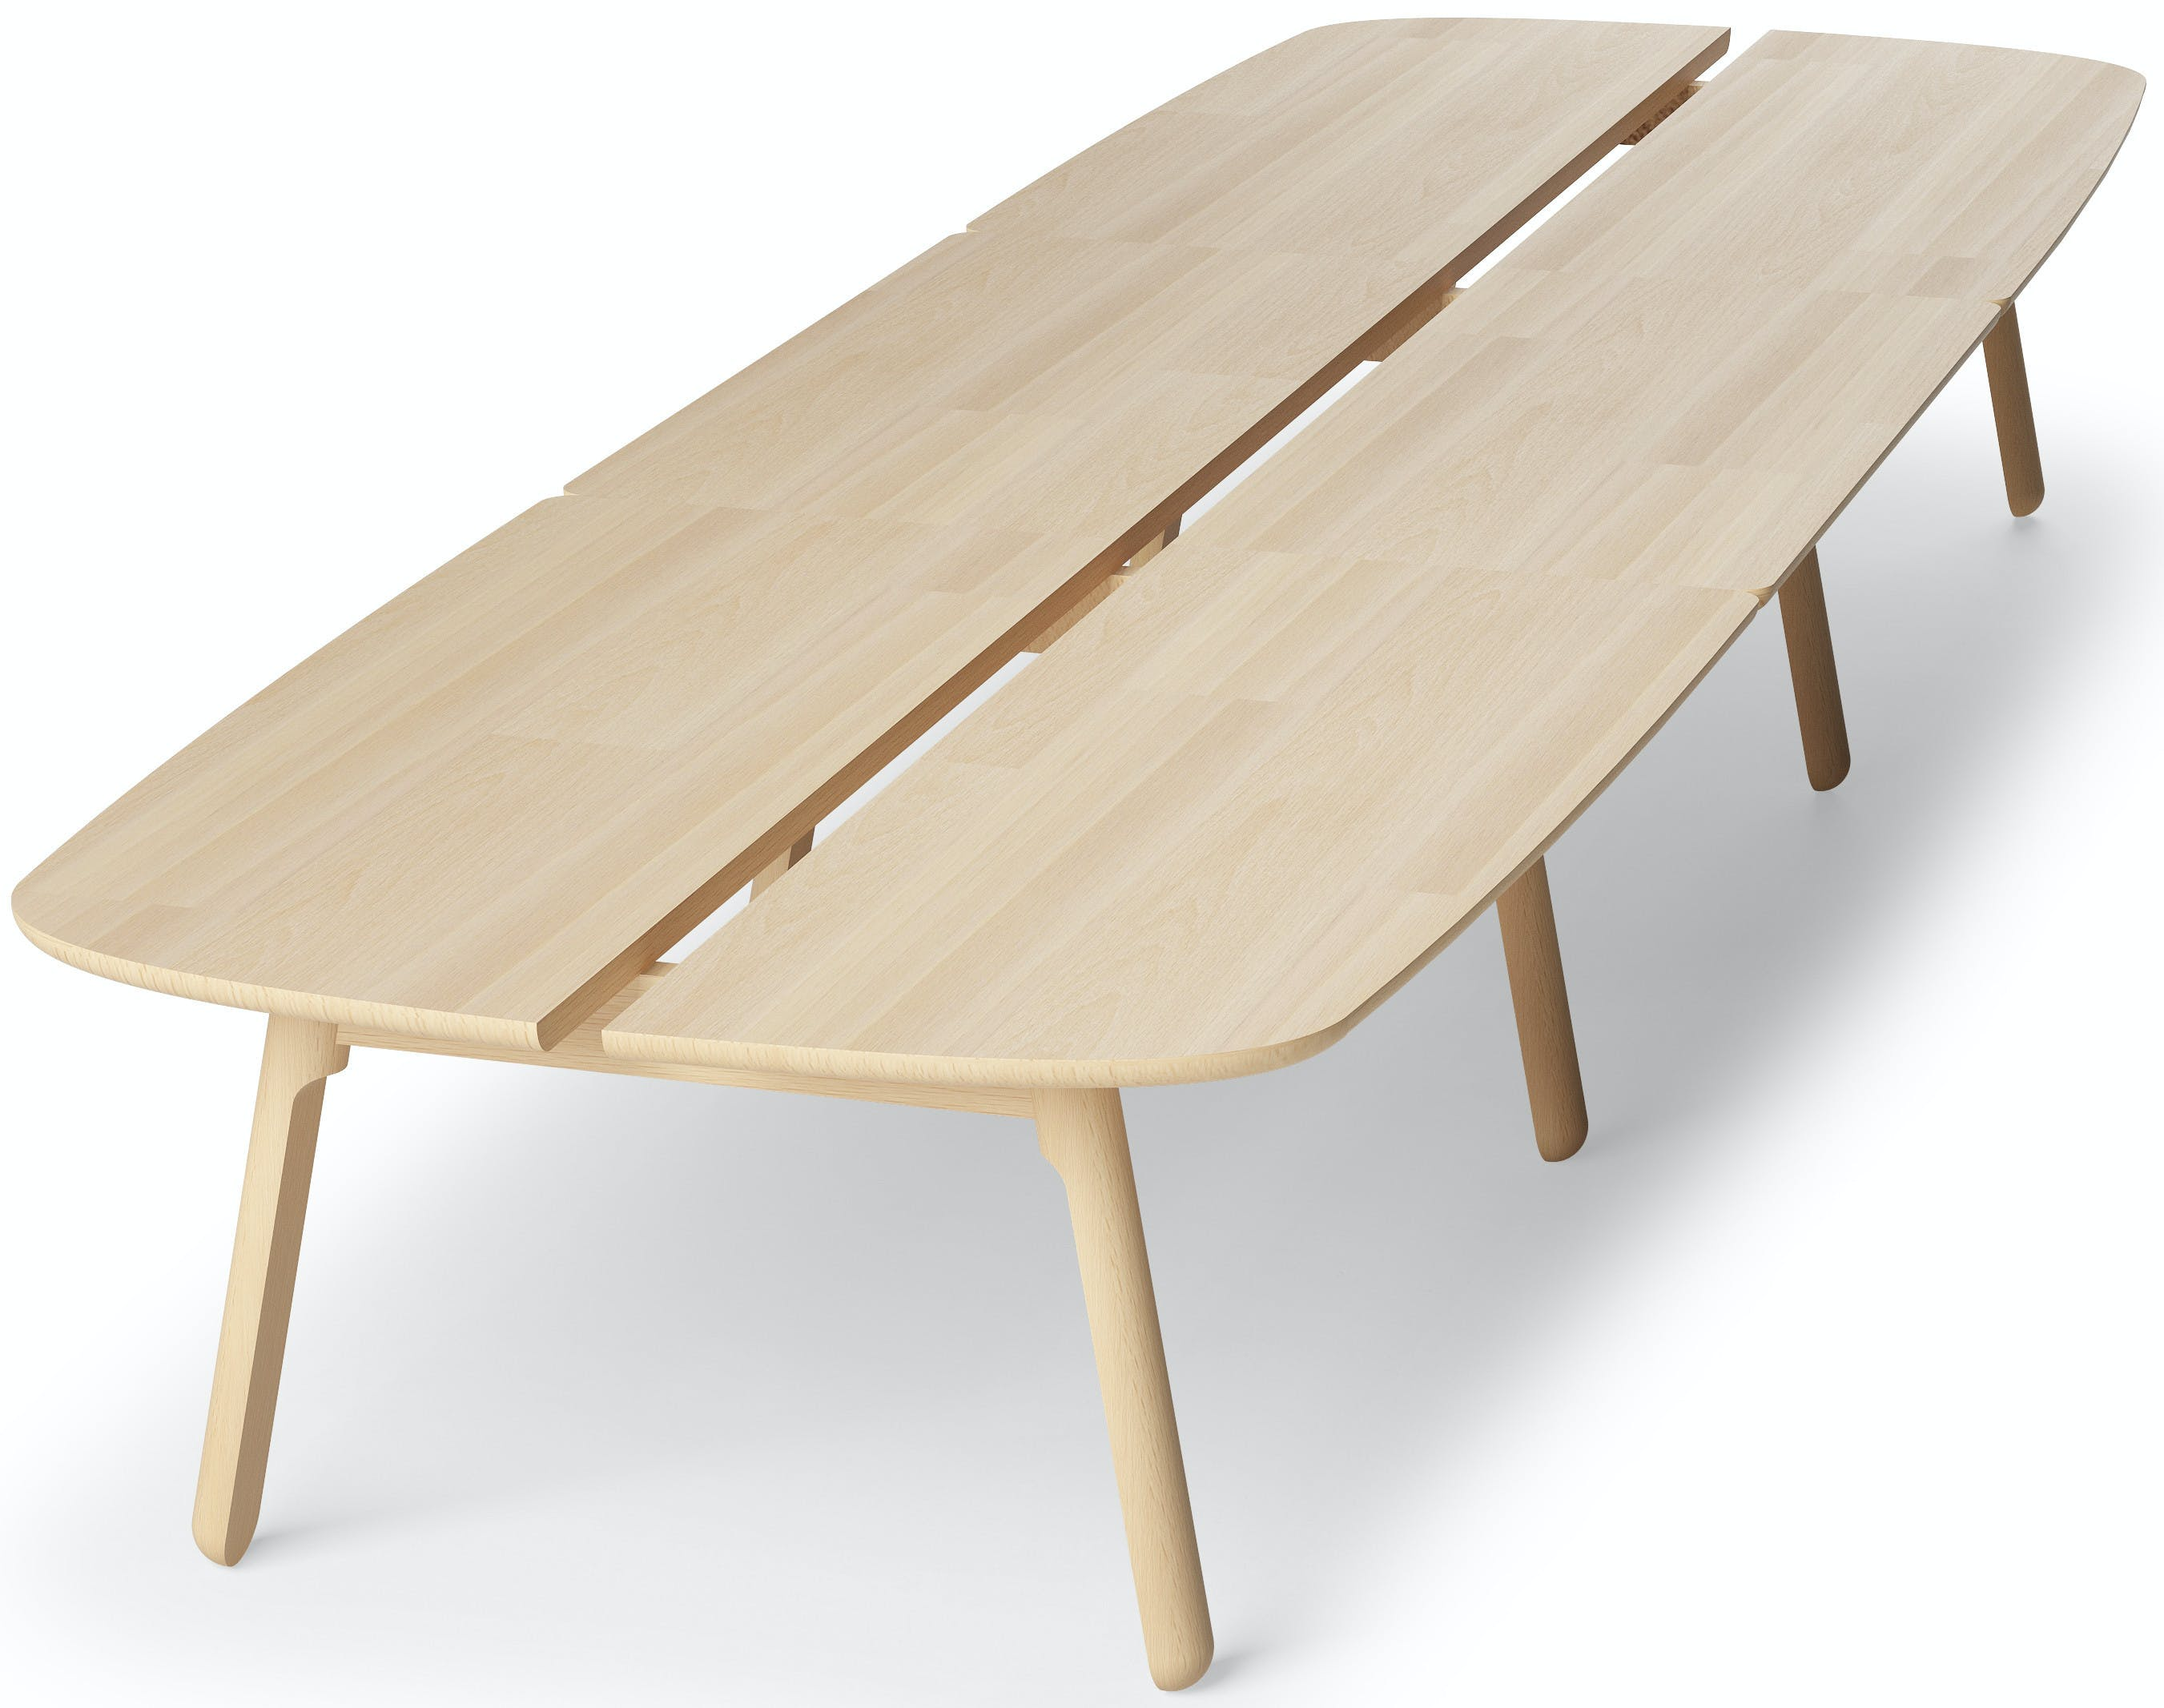 Dum-furniture-long-tan-beech-board-haute-living